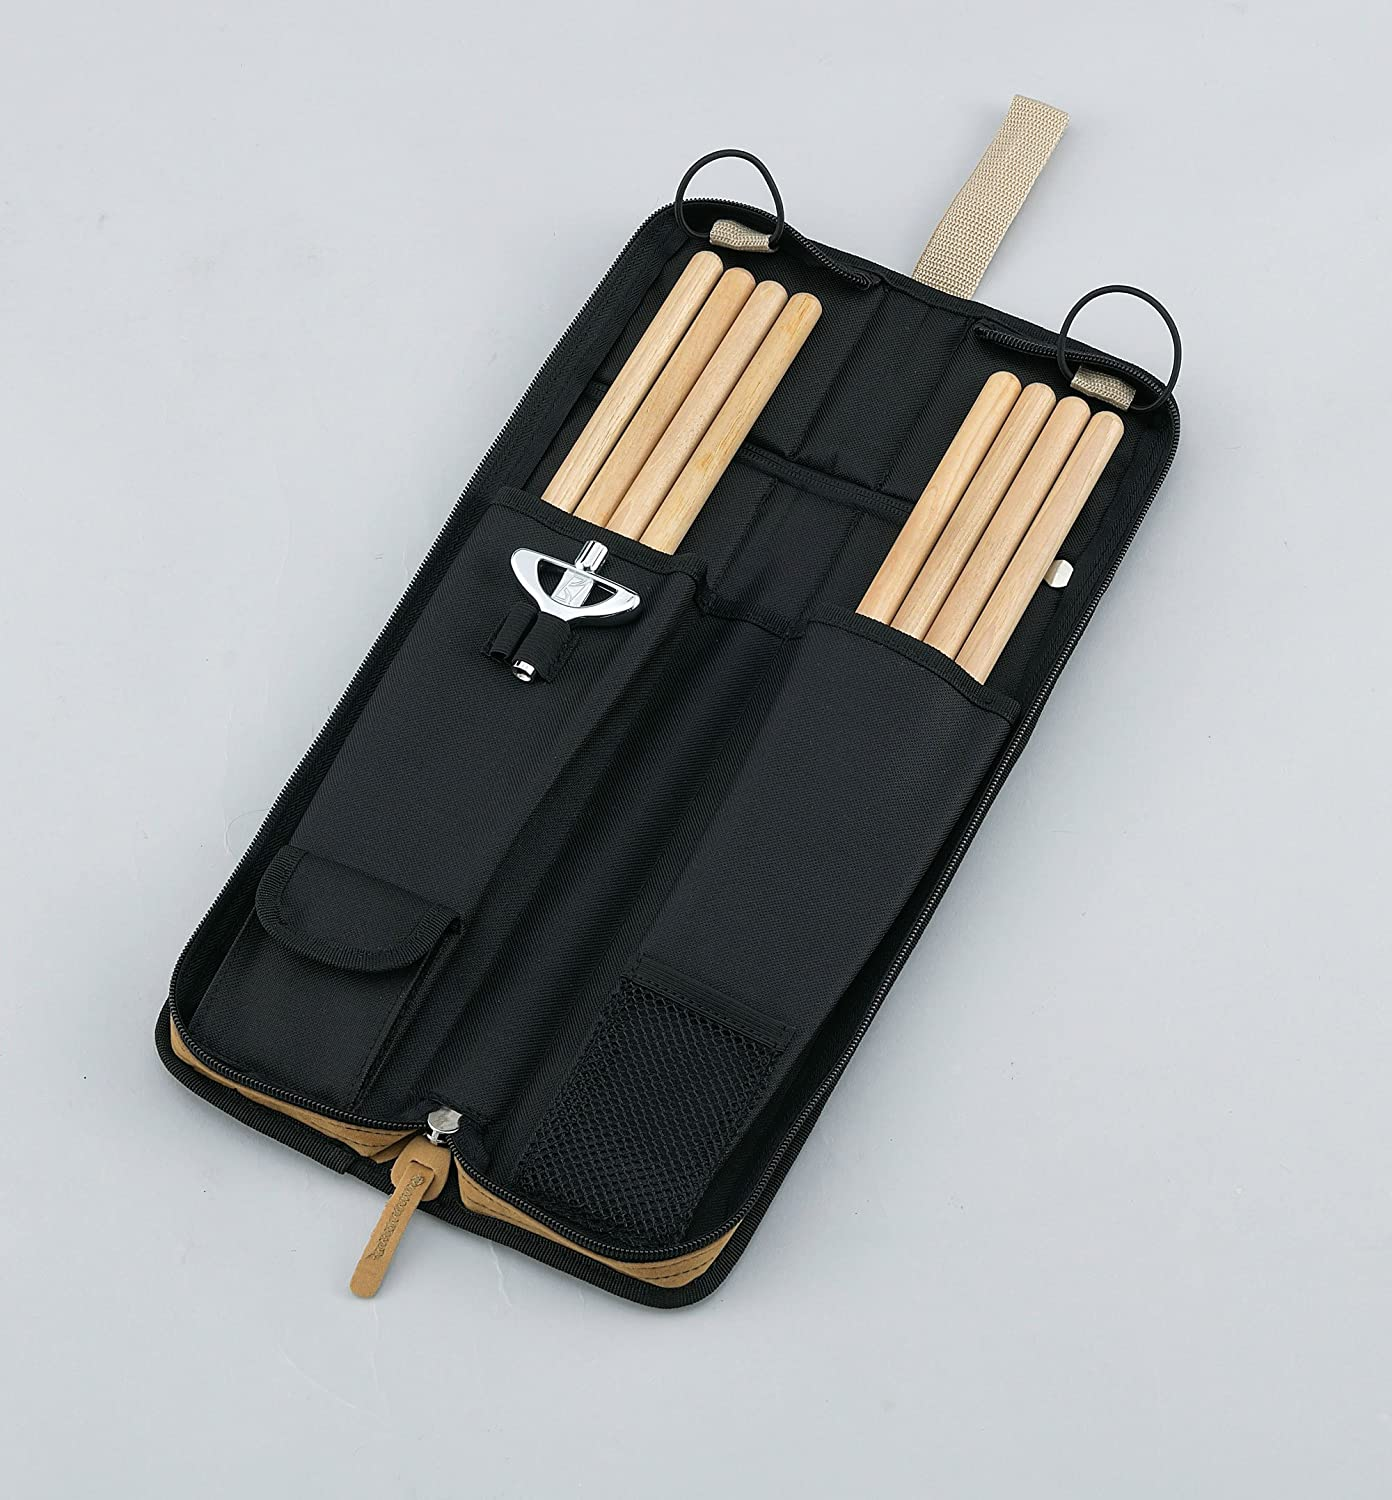 Tama Powerpad Stick Bag